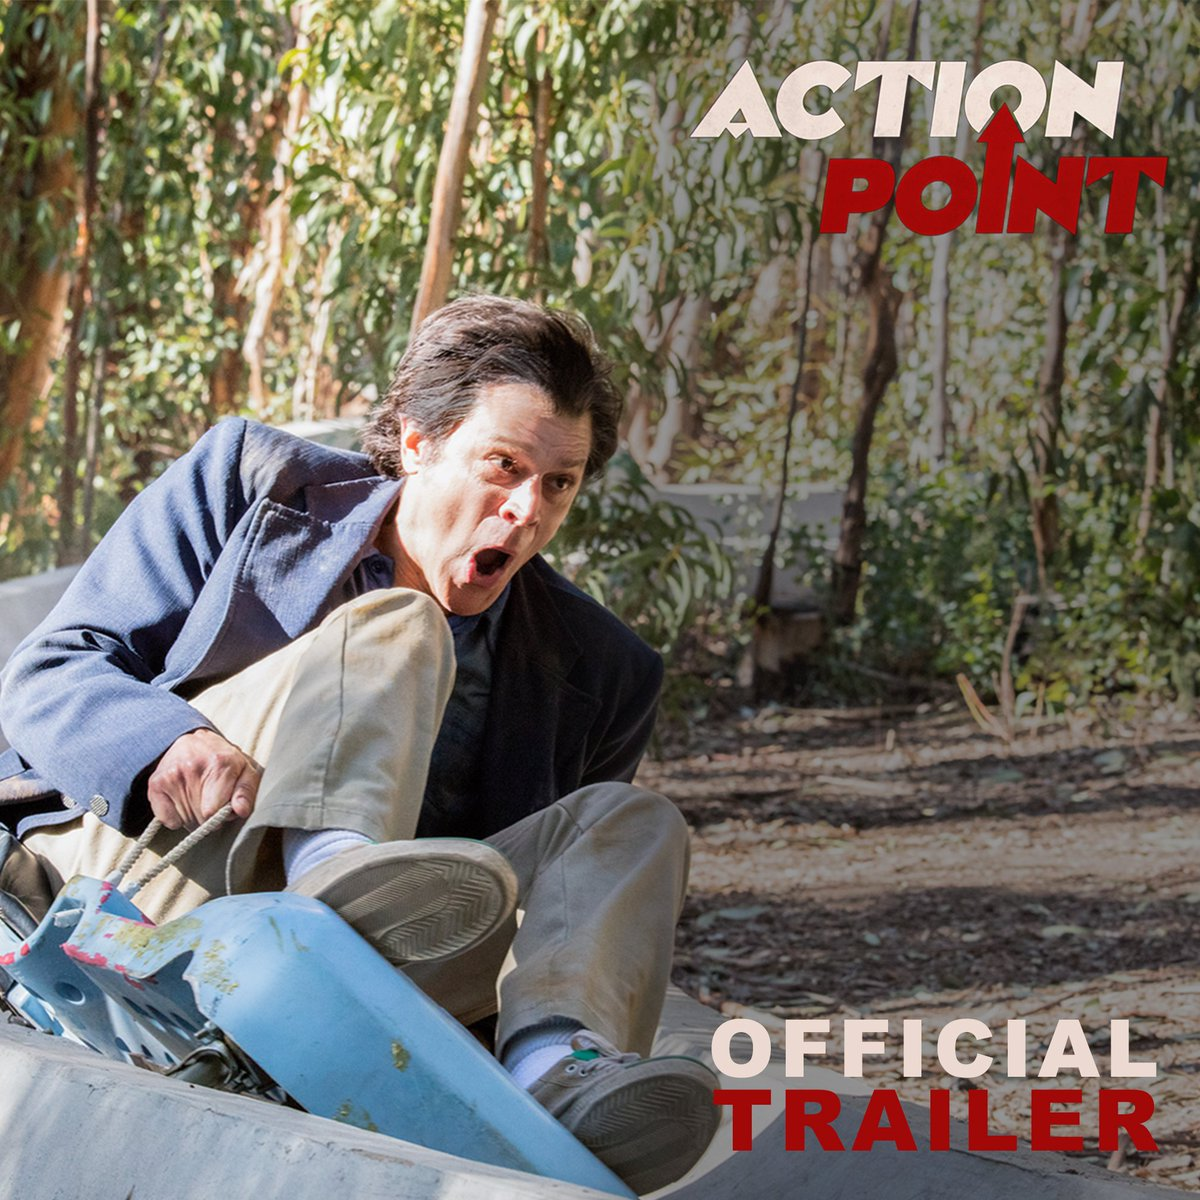 #actionpoint is the theme park your mom doesn't want you to know about. no rules, no limits, just pure fun. opening june 1st. watch the trailer now. https://t.co/erNfbXE2fC